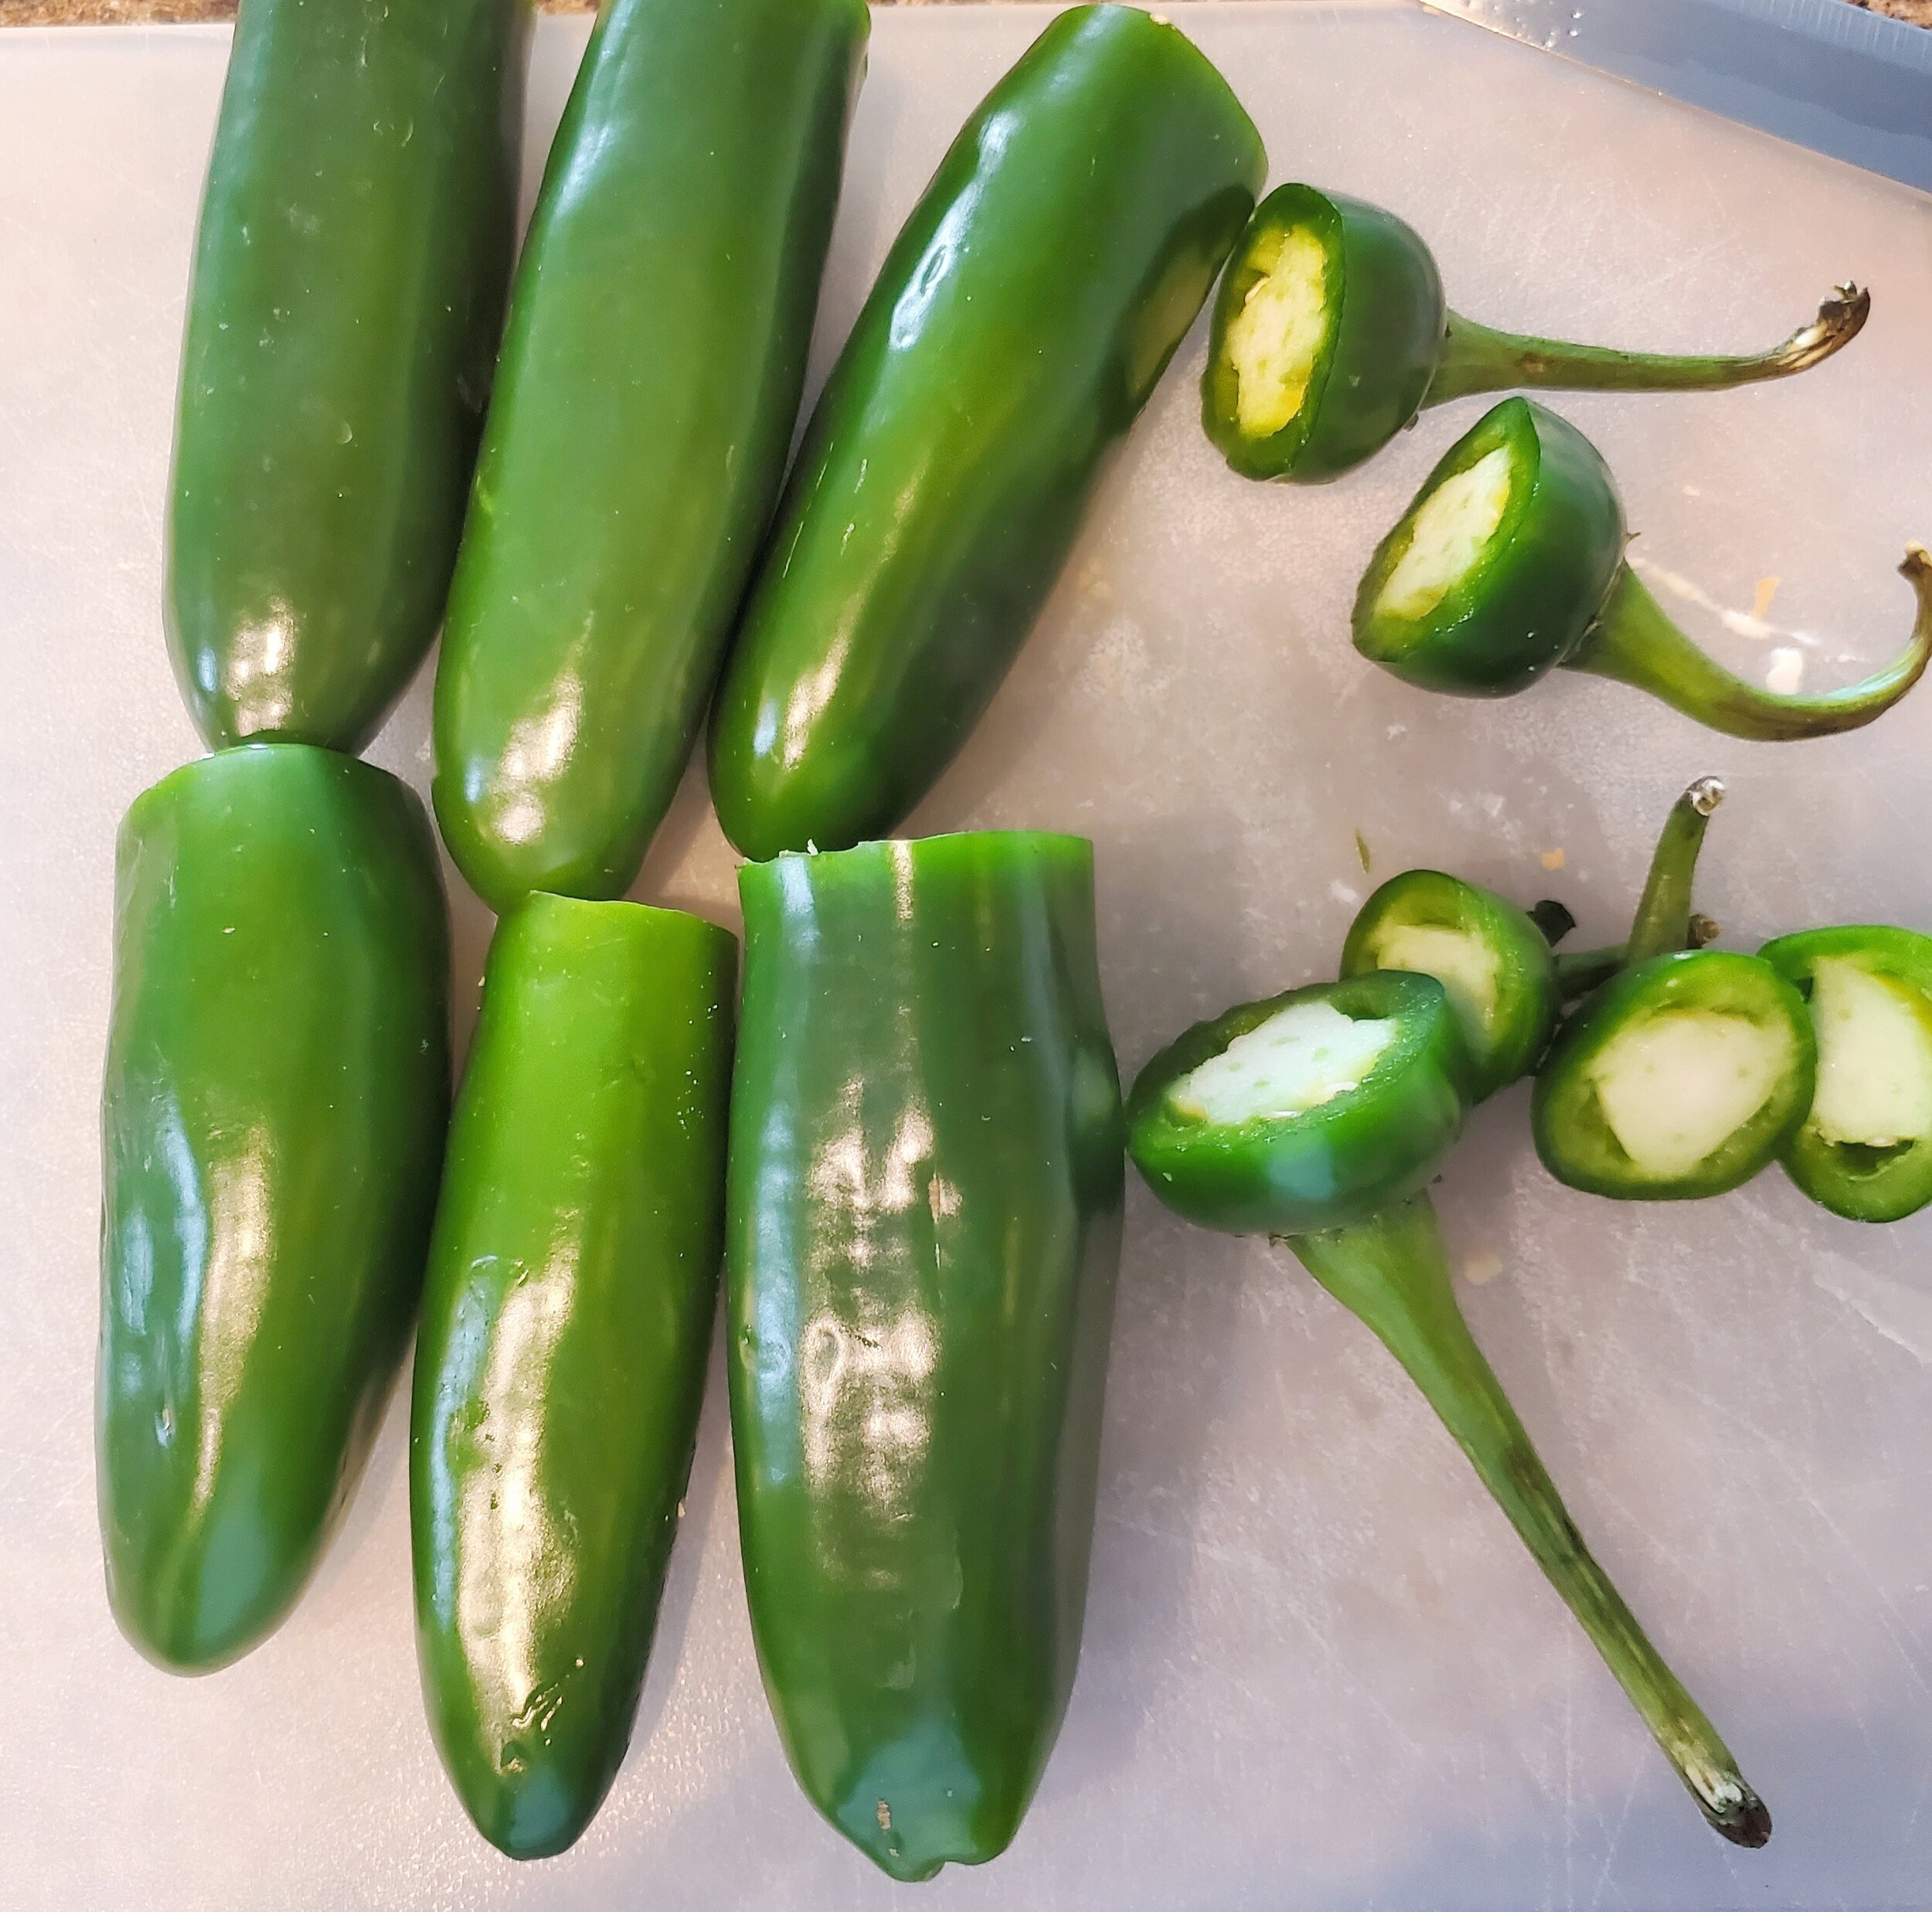 Cut the steams off the Jalapenos -